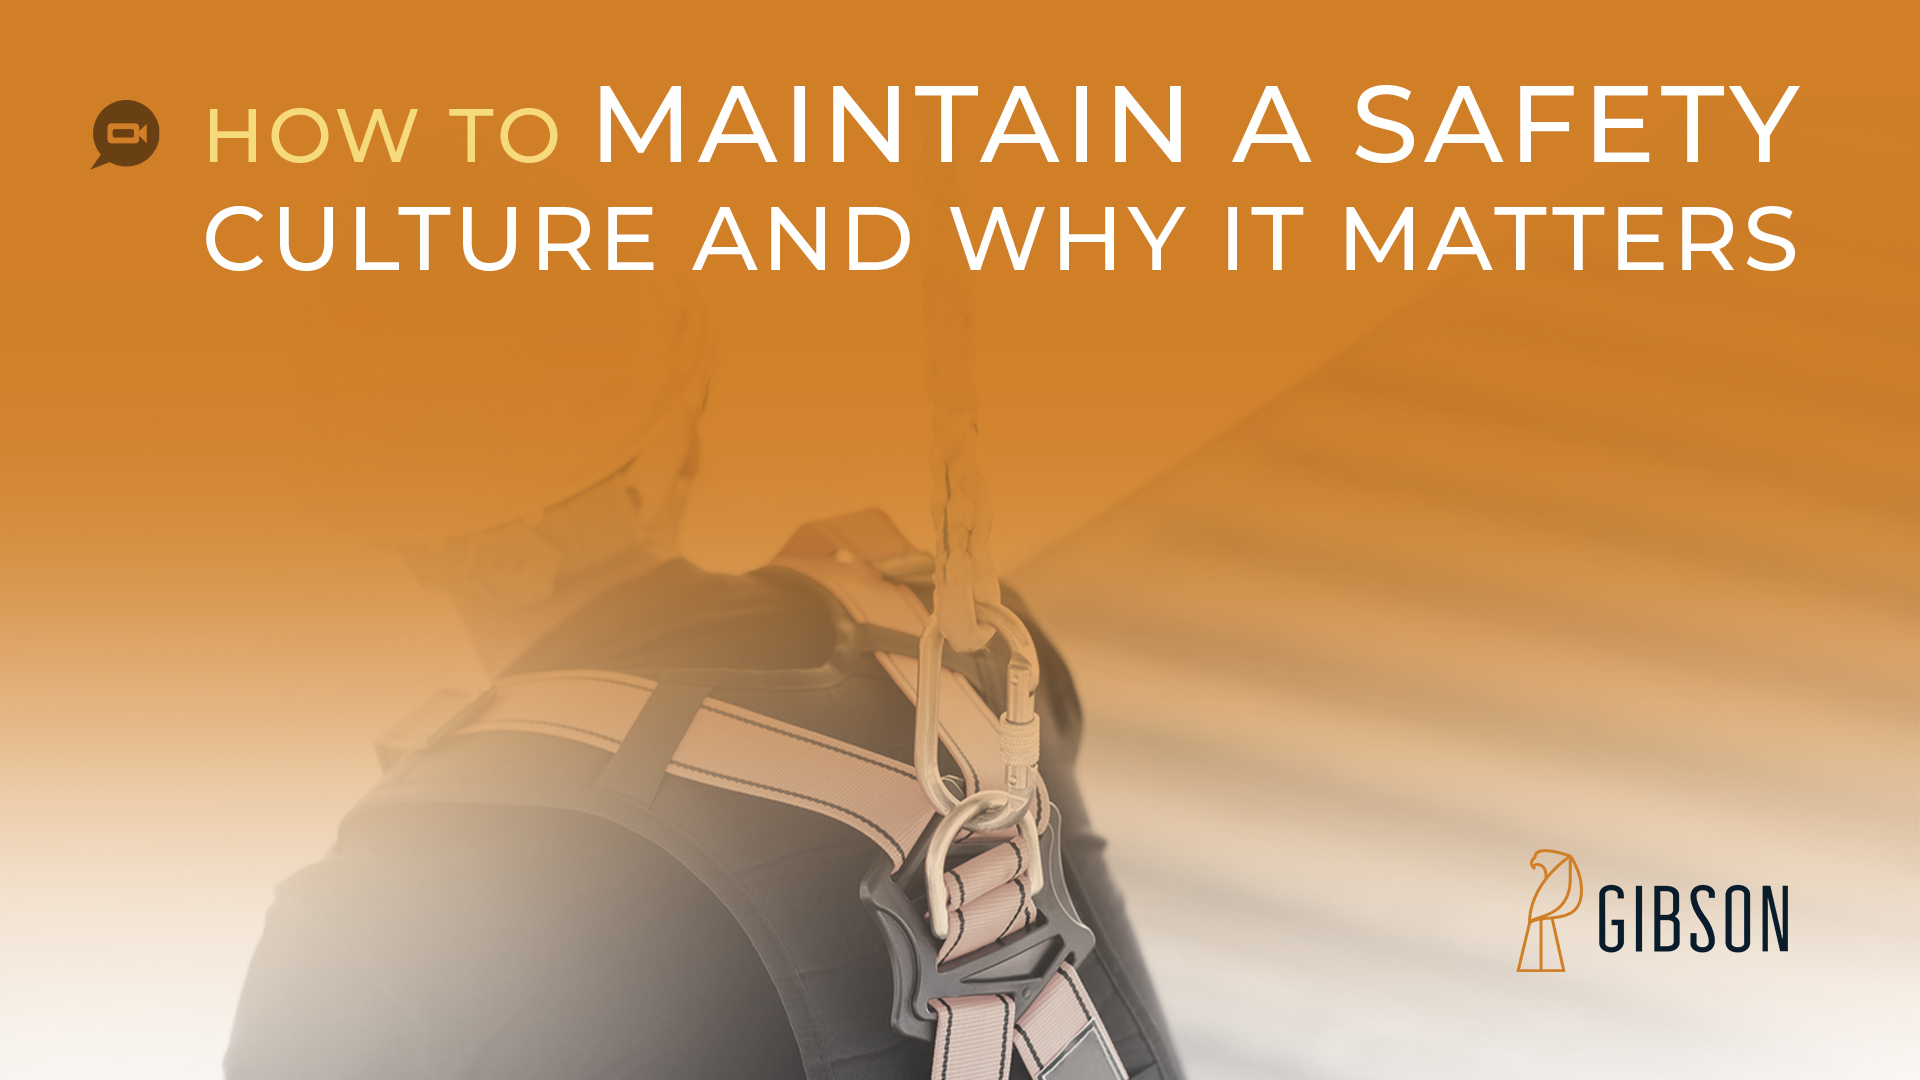 How to Maintain a Safety Culture and Why it Matters